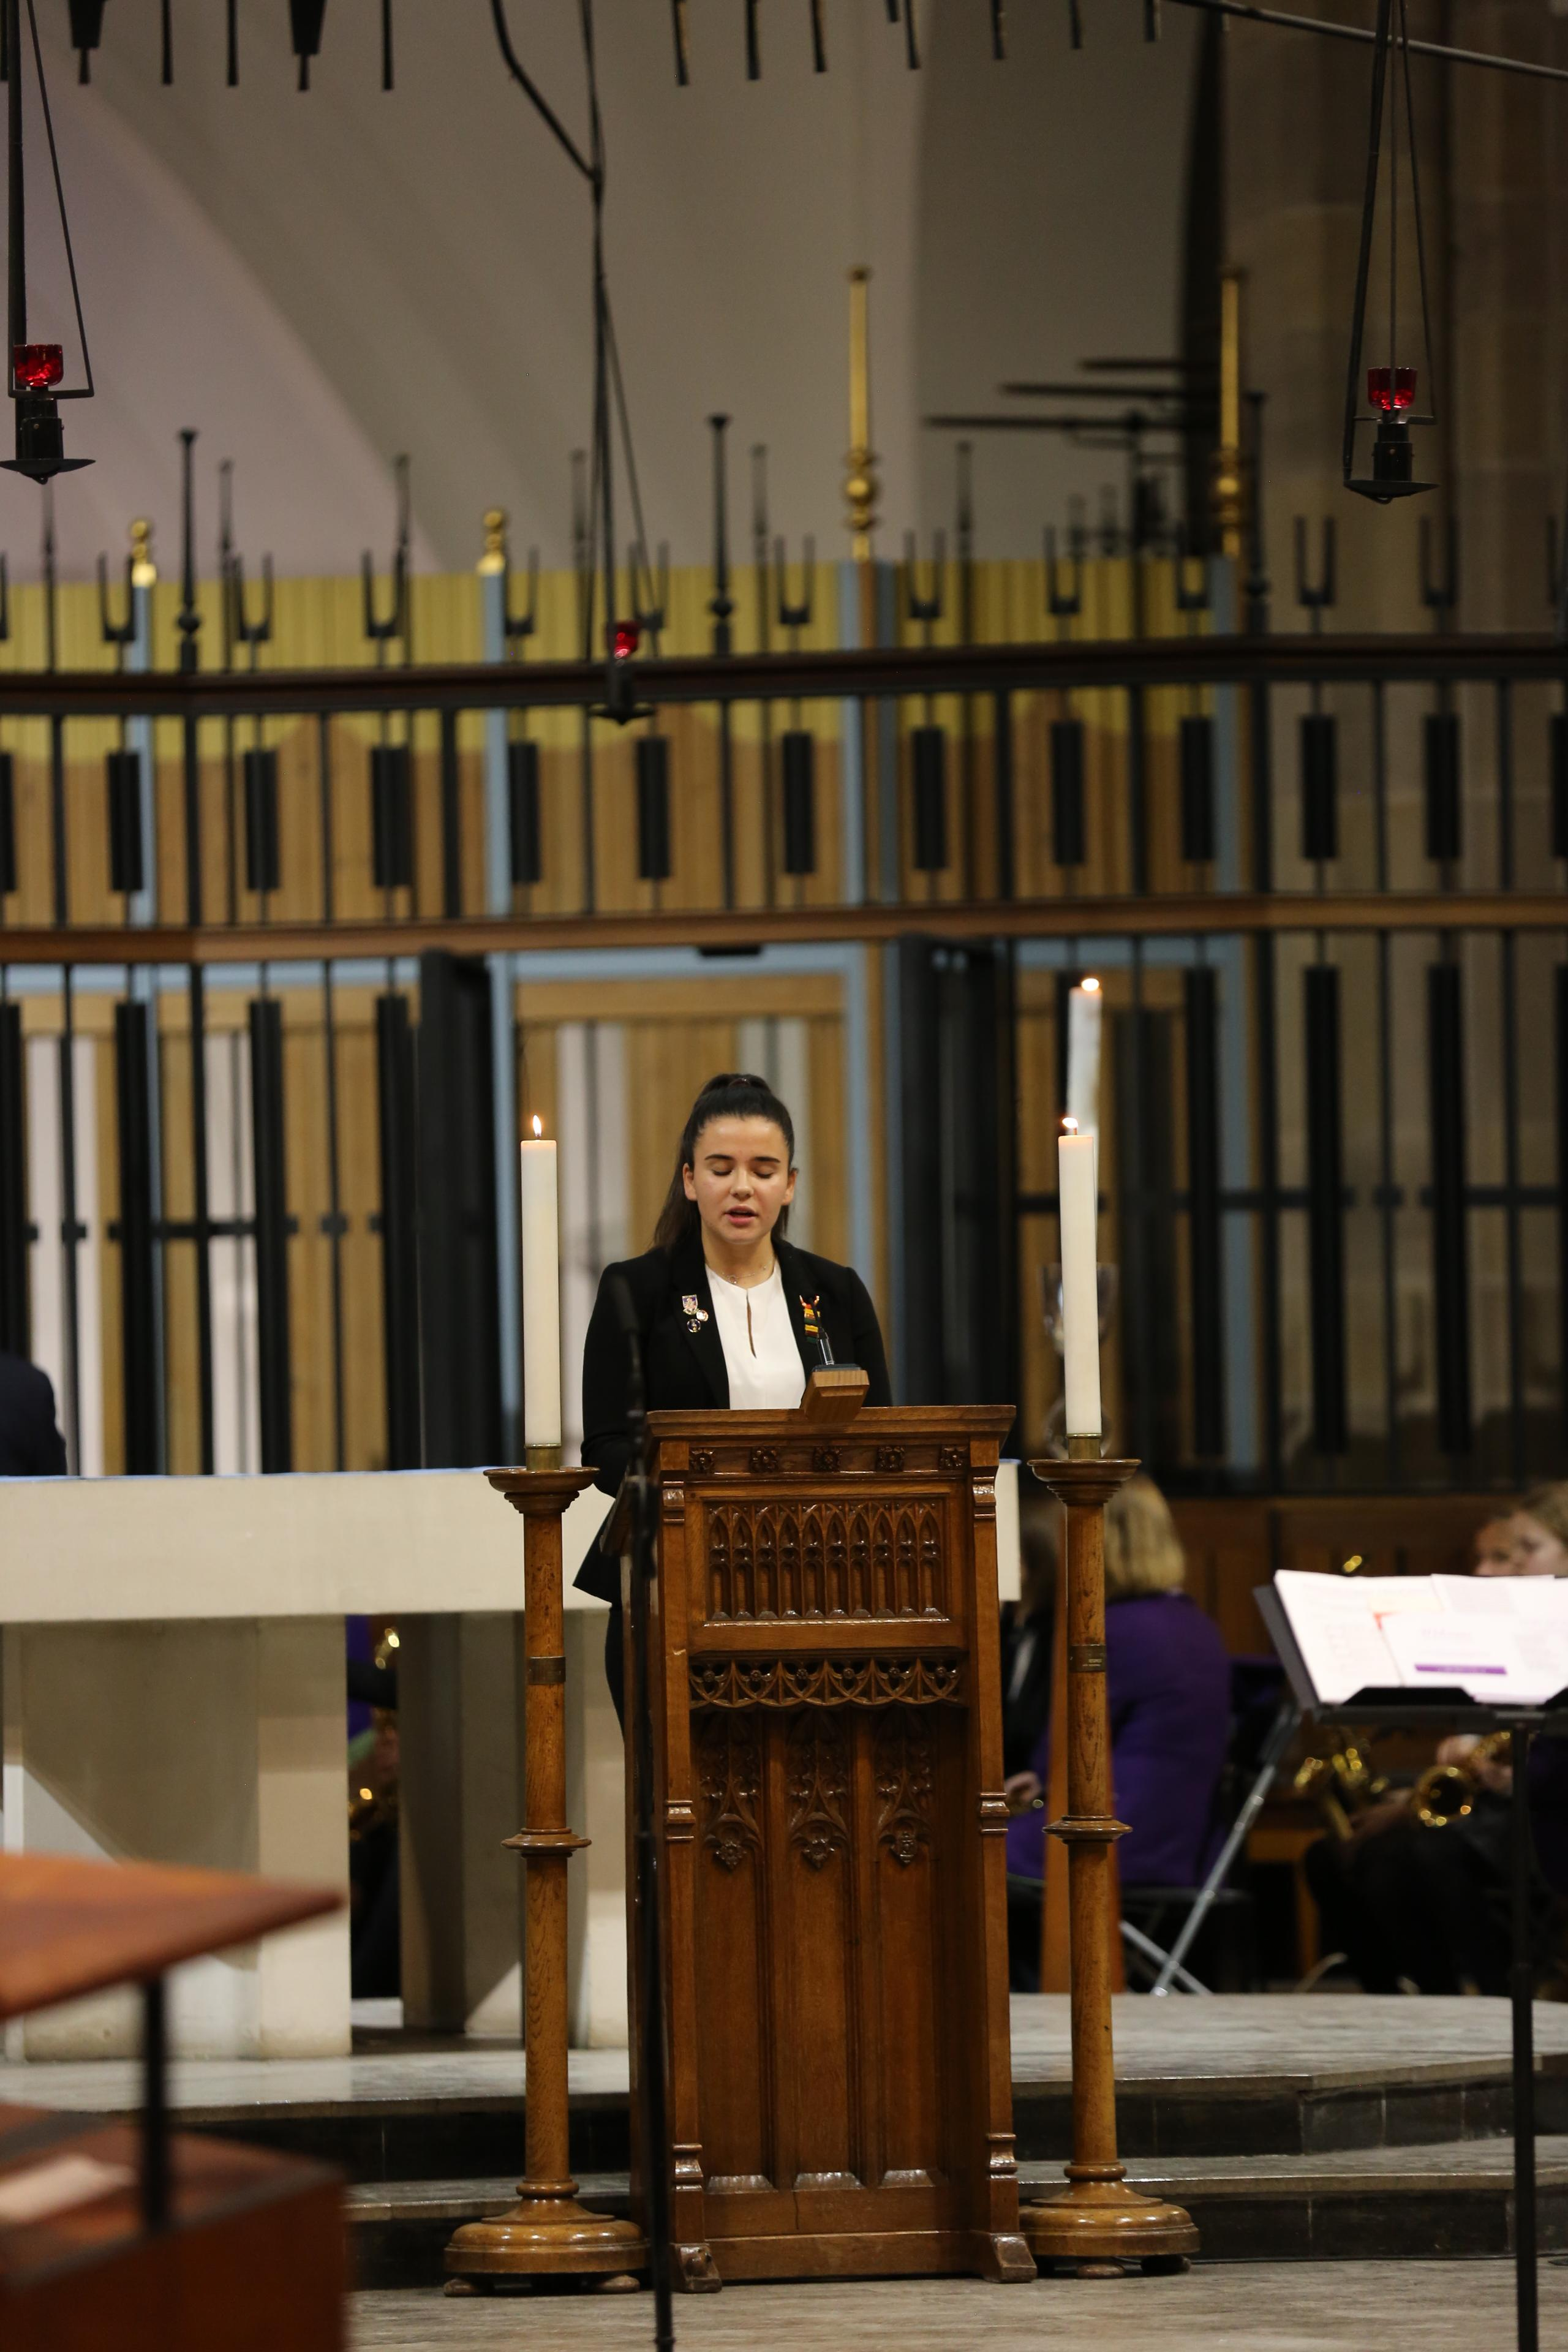 Westholme senior school student performs a reading during the carol service at Blackburn Cathedral